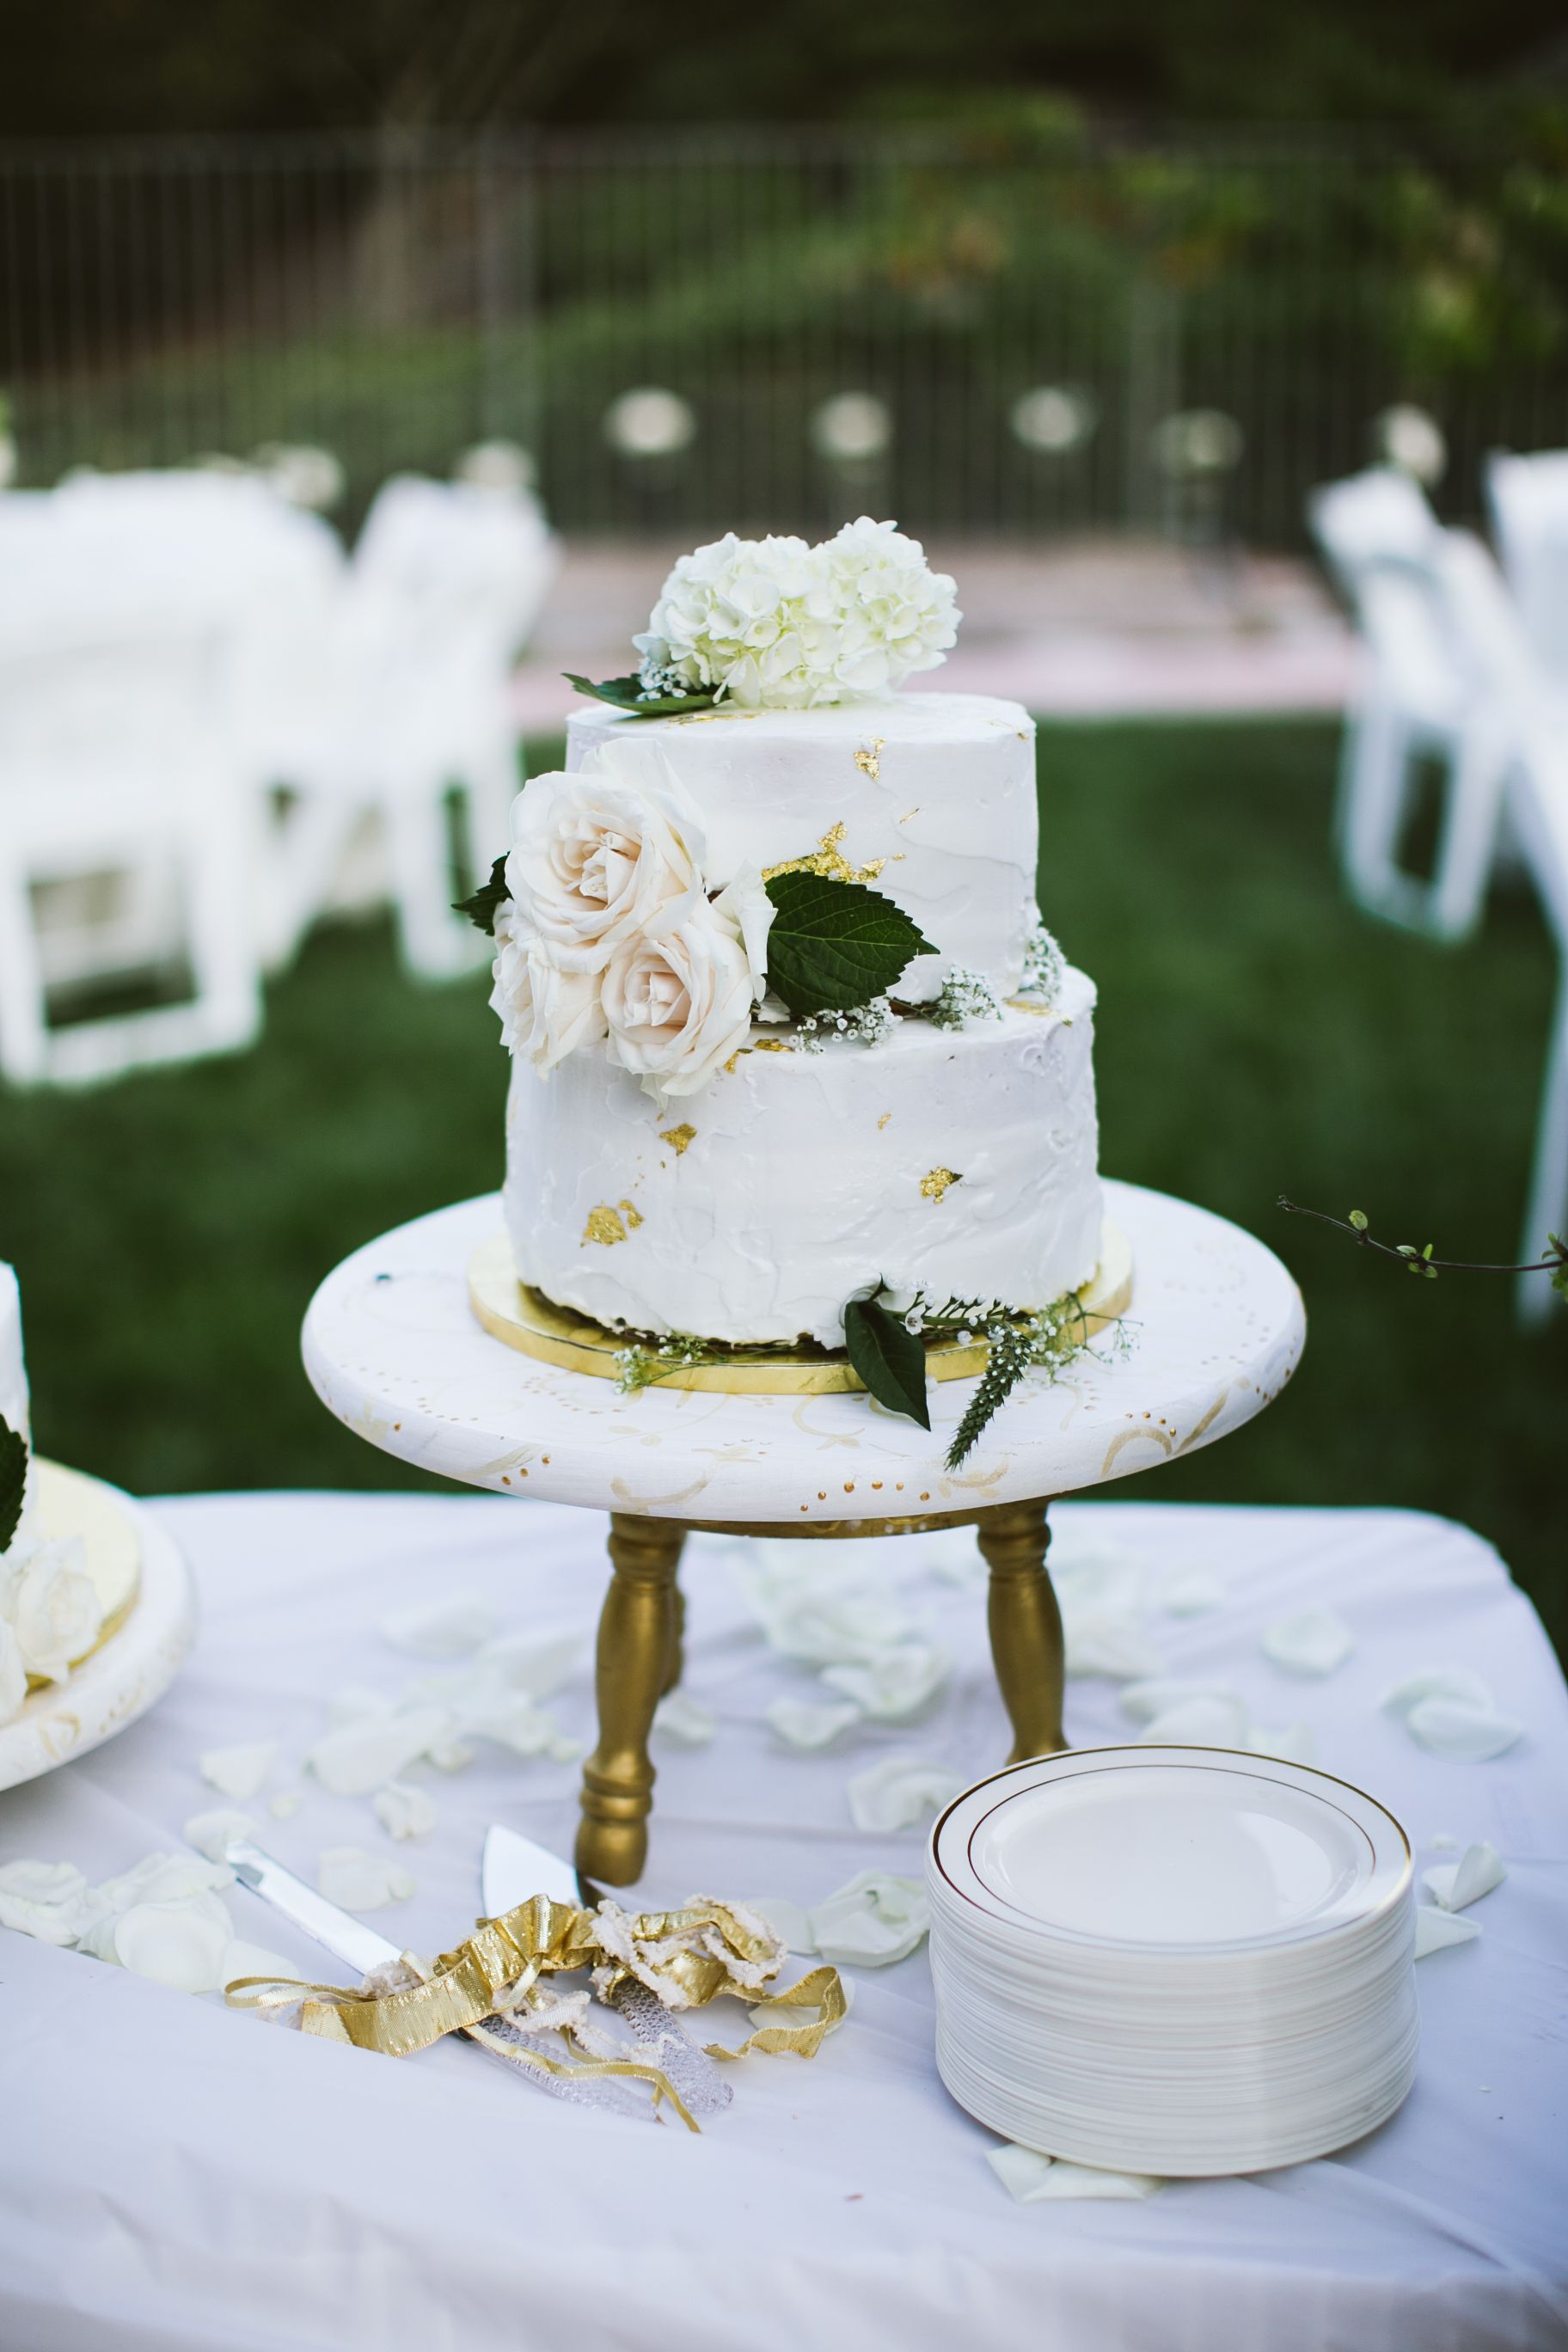 Wedding Cake Costs Servings Delivery Info 2020 Prices Avg Wedding Cake Cost Wedding Cake Prices Wedding Cakes